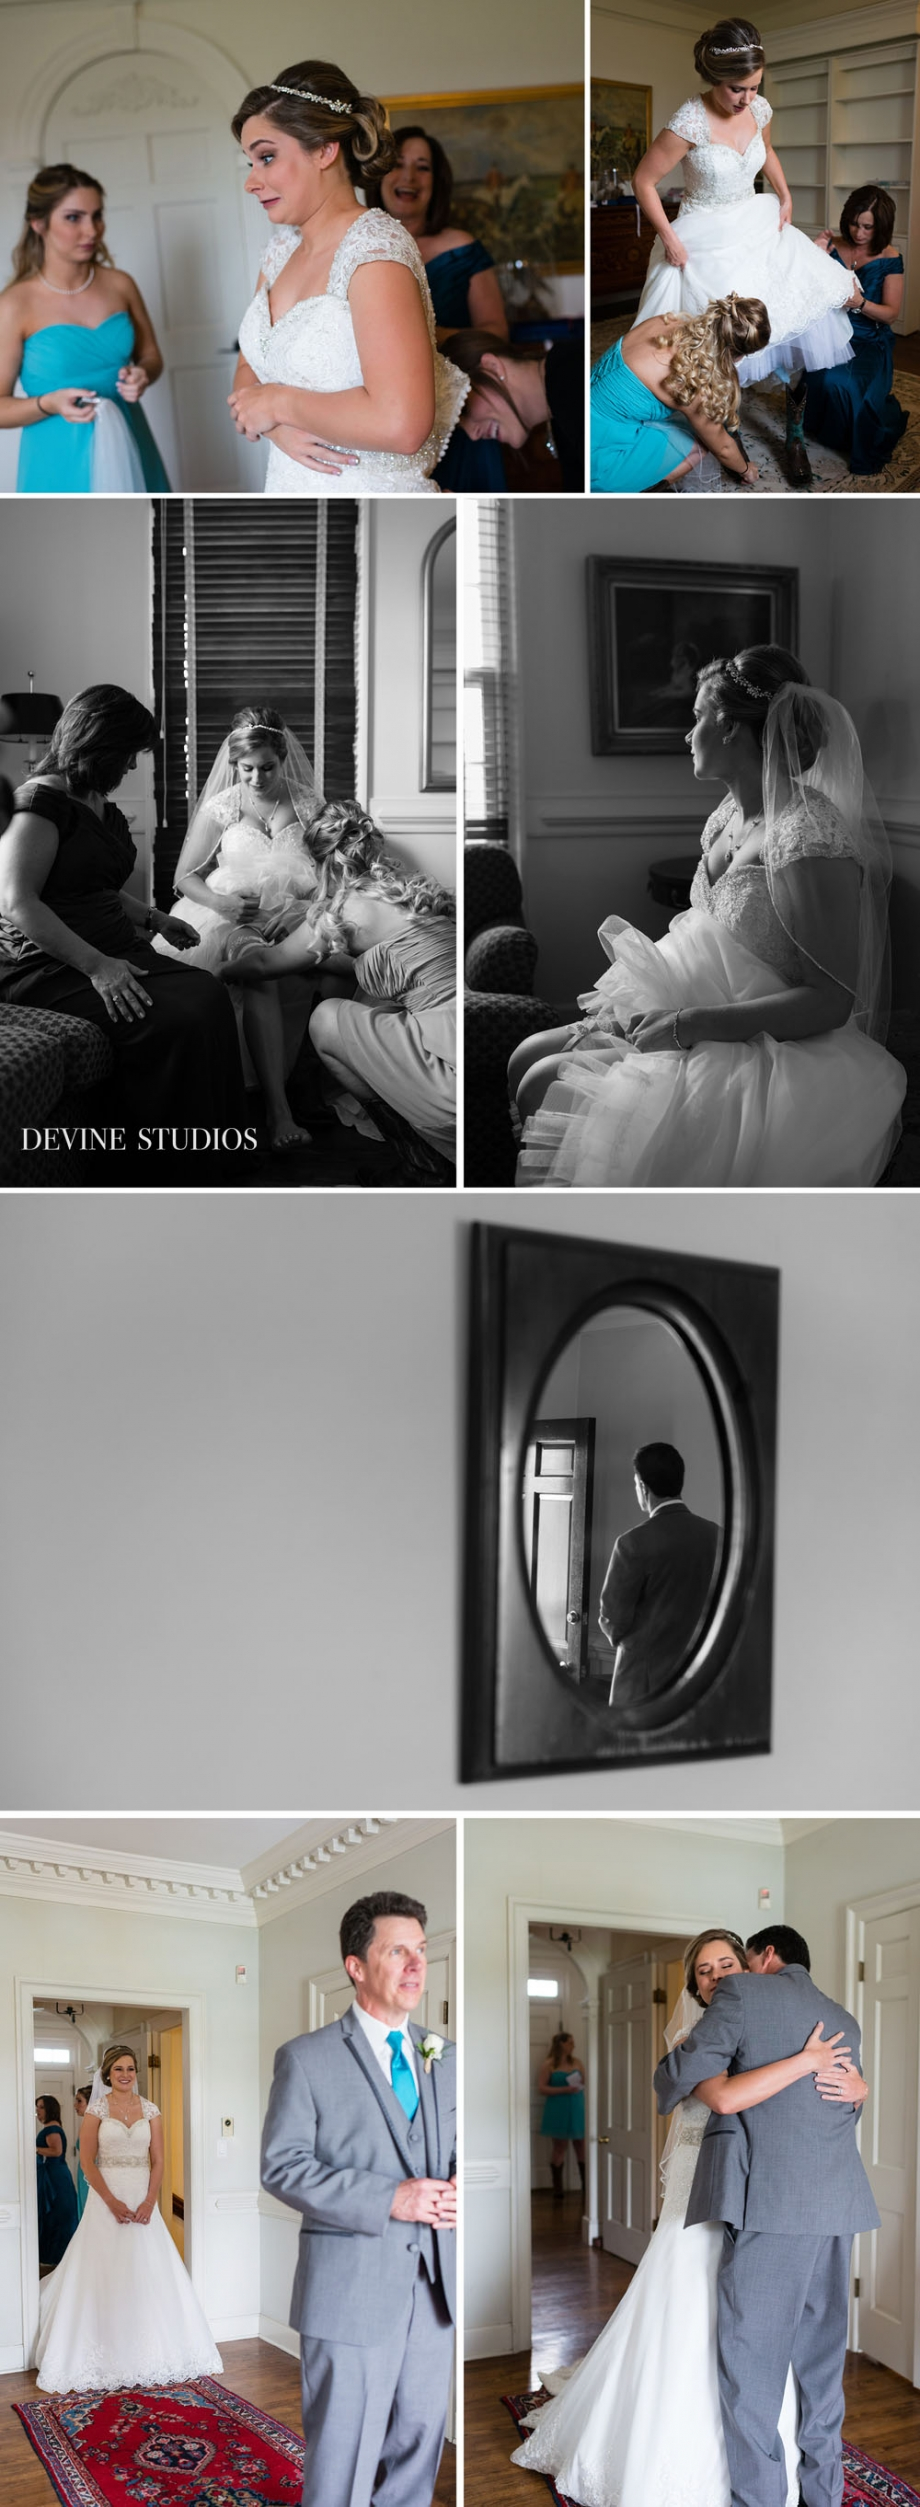 Kansas City-Wedding-Photography-Mildale Farm-Devine Studios3